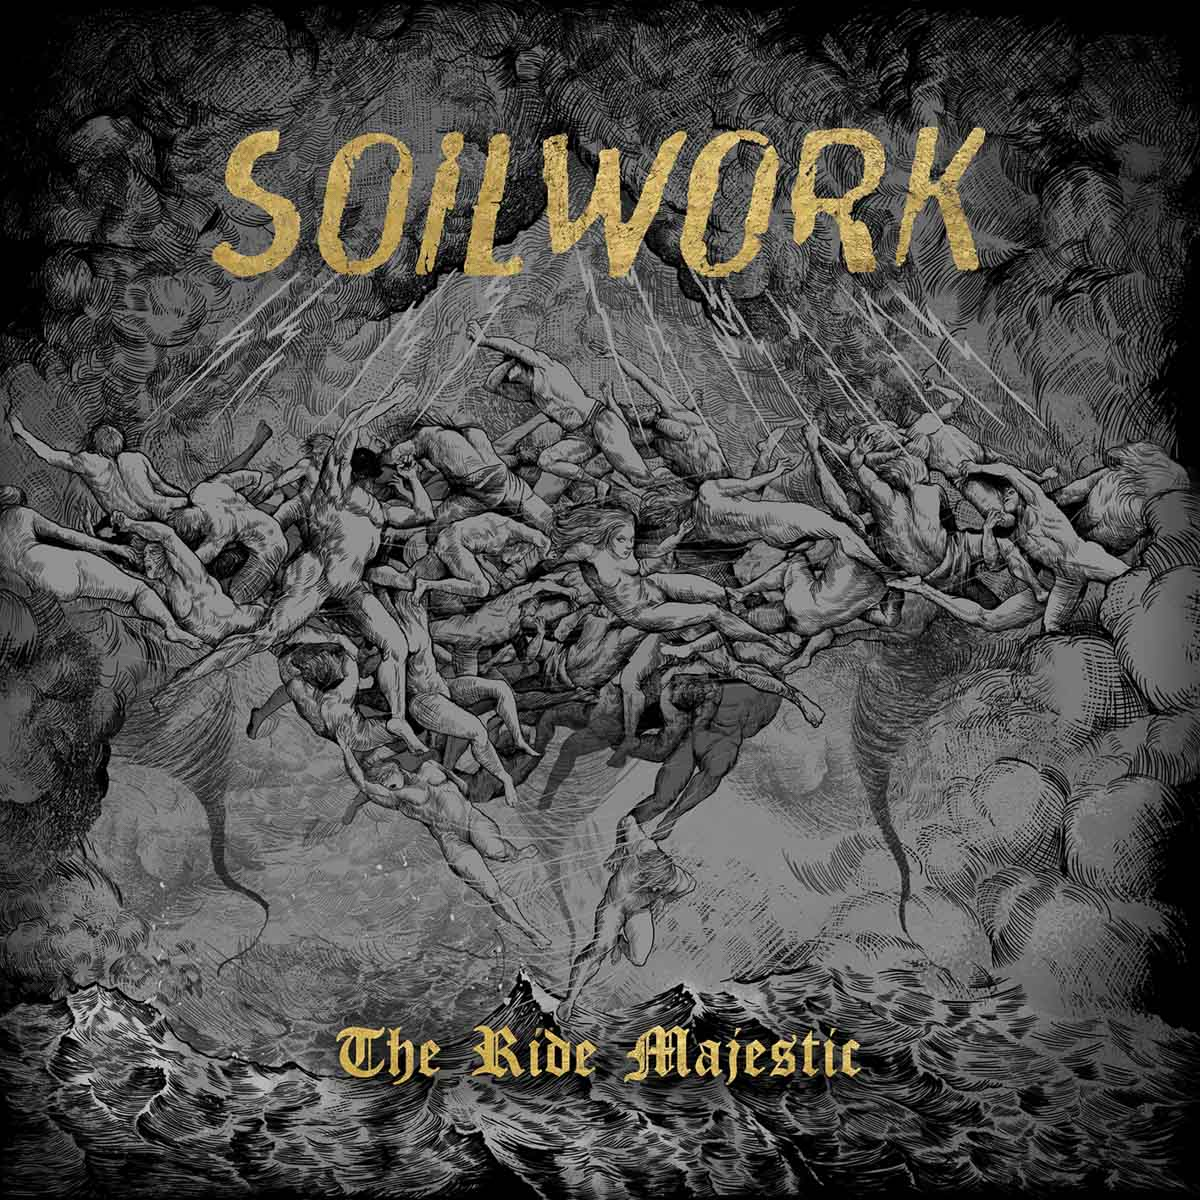 Soilwork: The Ride Majestic (2015) Book Cover